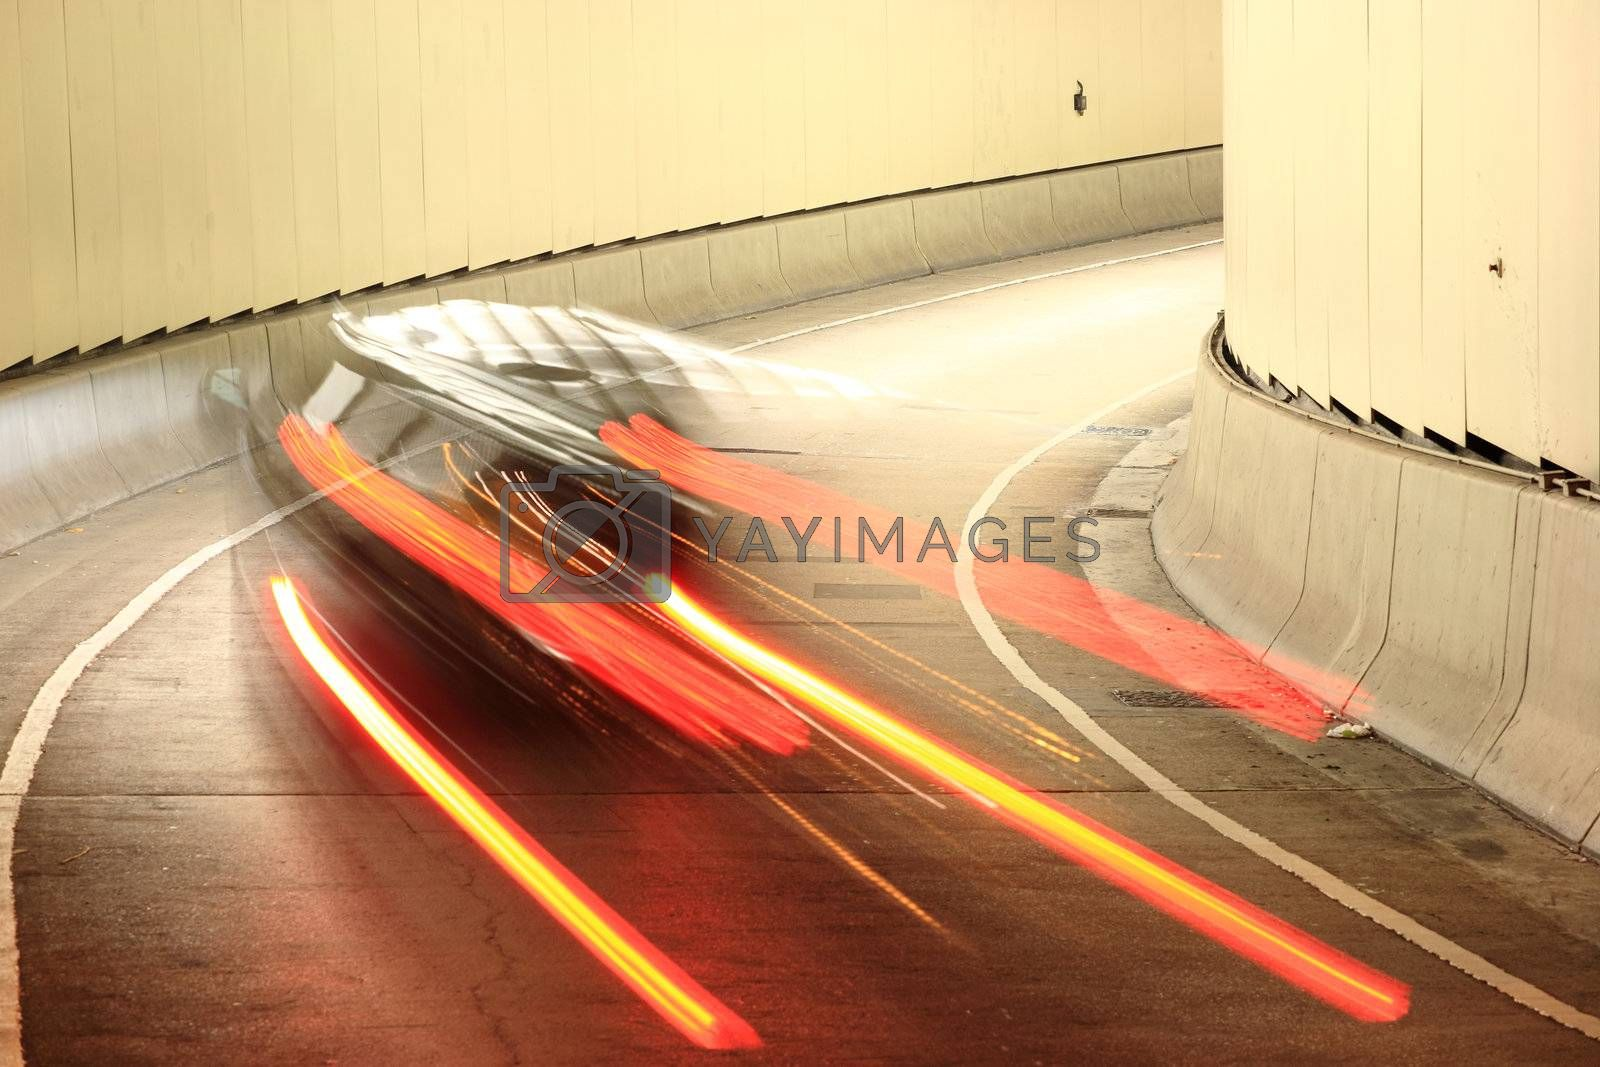 Royalty free image of car going into tunnel by leungchopan